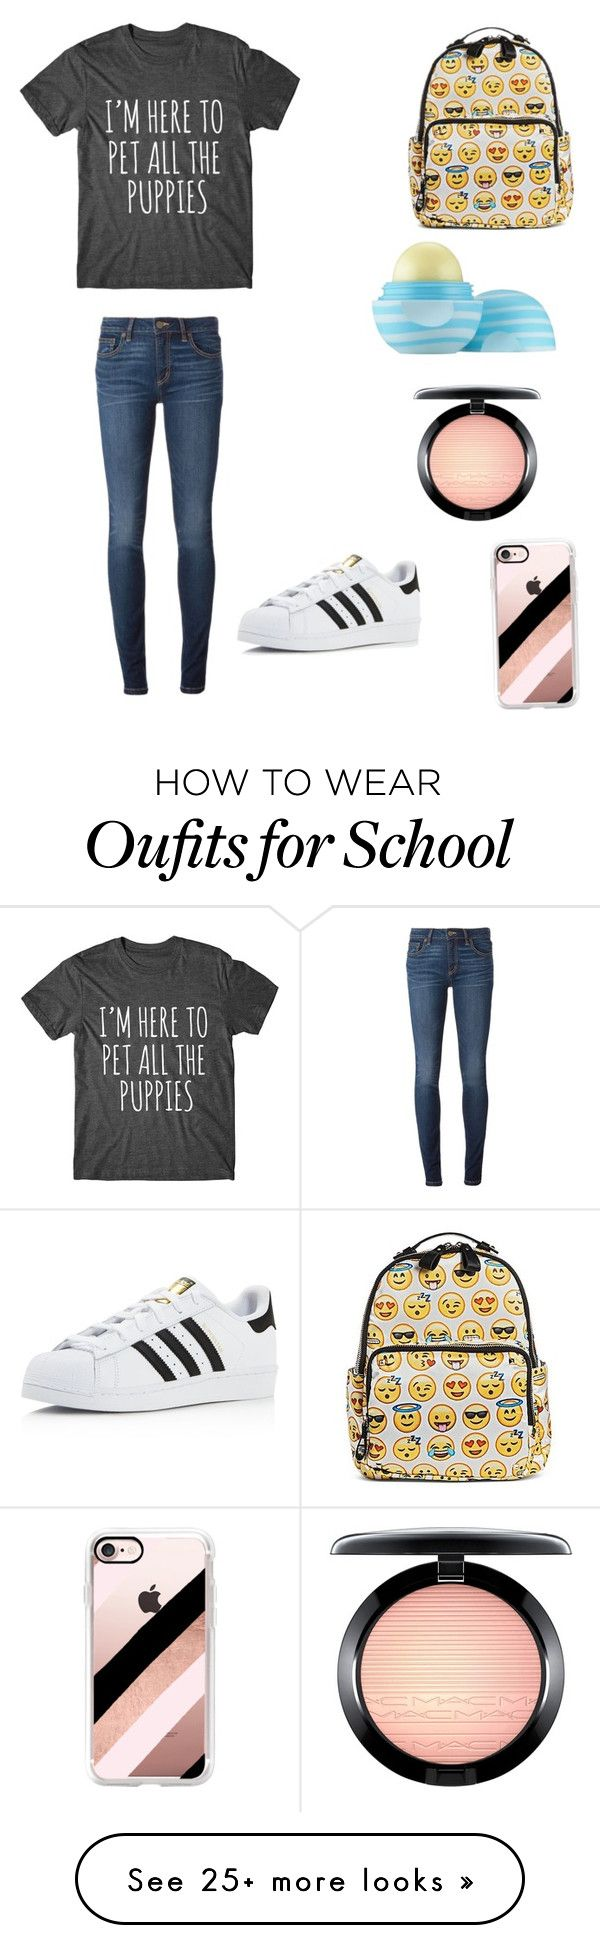 """""""Day at school"""" by pinkdoggy on Polyvore featuring MMS Design Studio, Marc by Marc Jacobs, Eos, MAC Cosmetics, Casetify and adidas"""